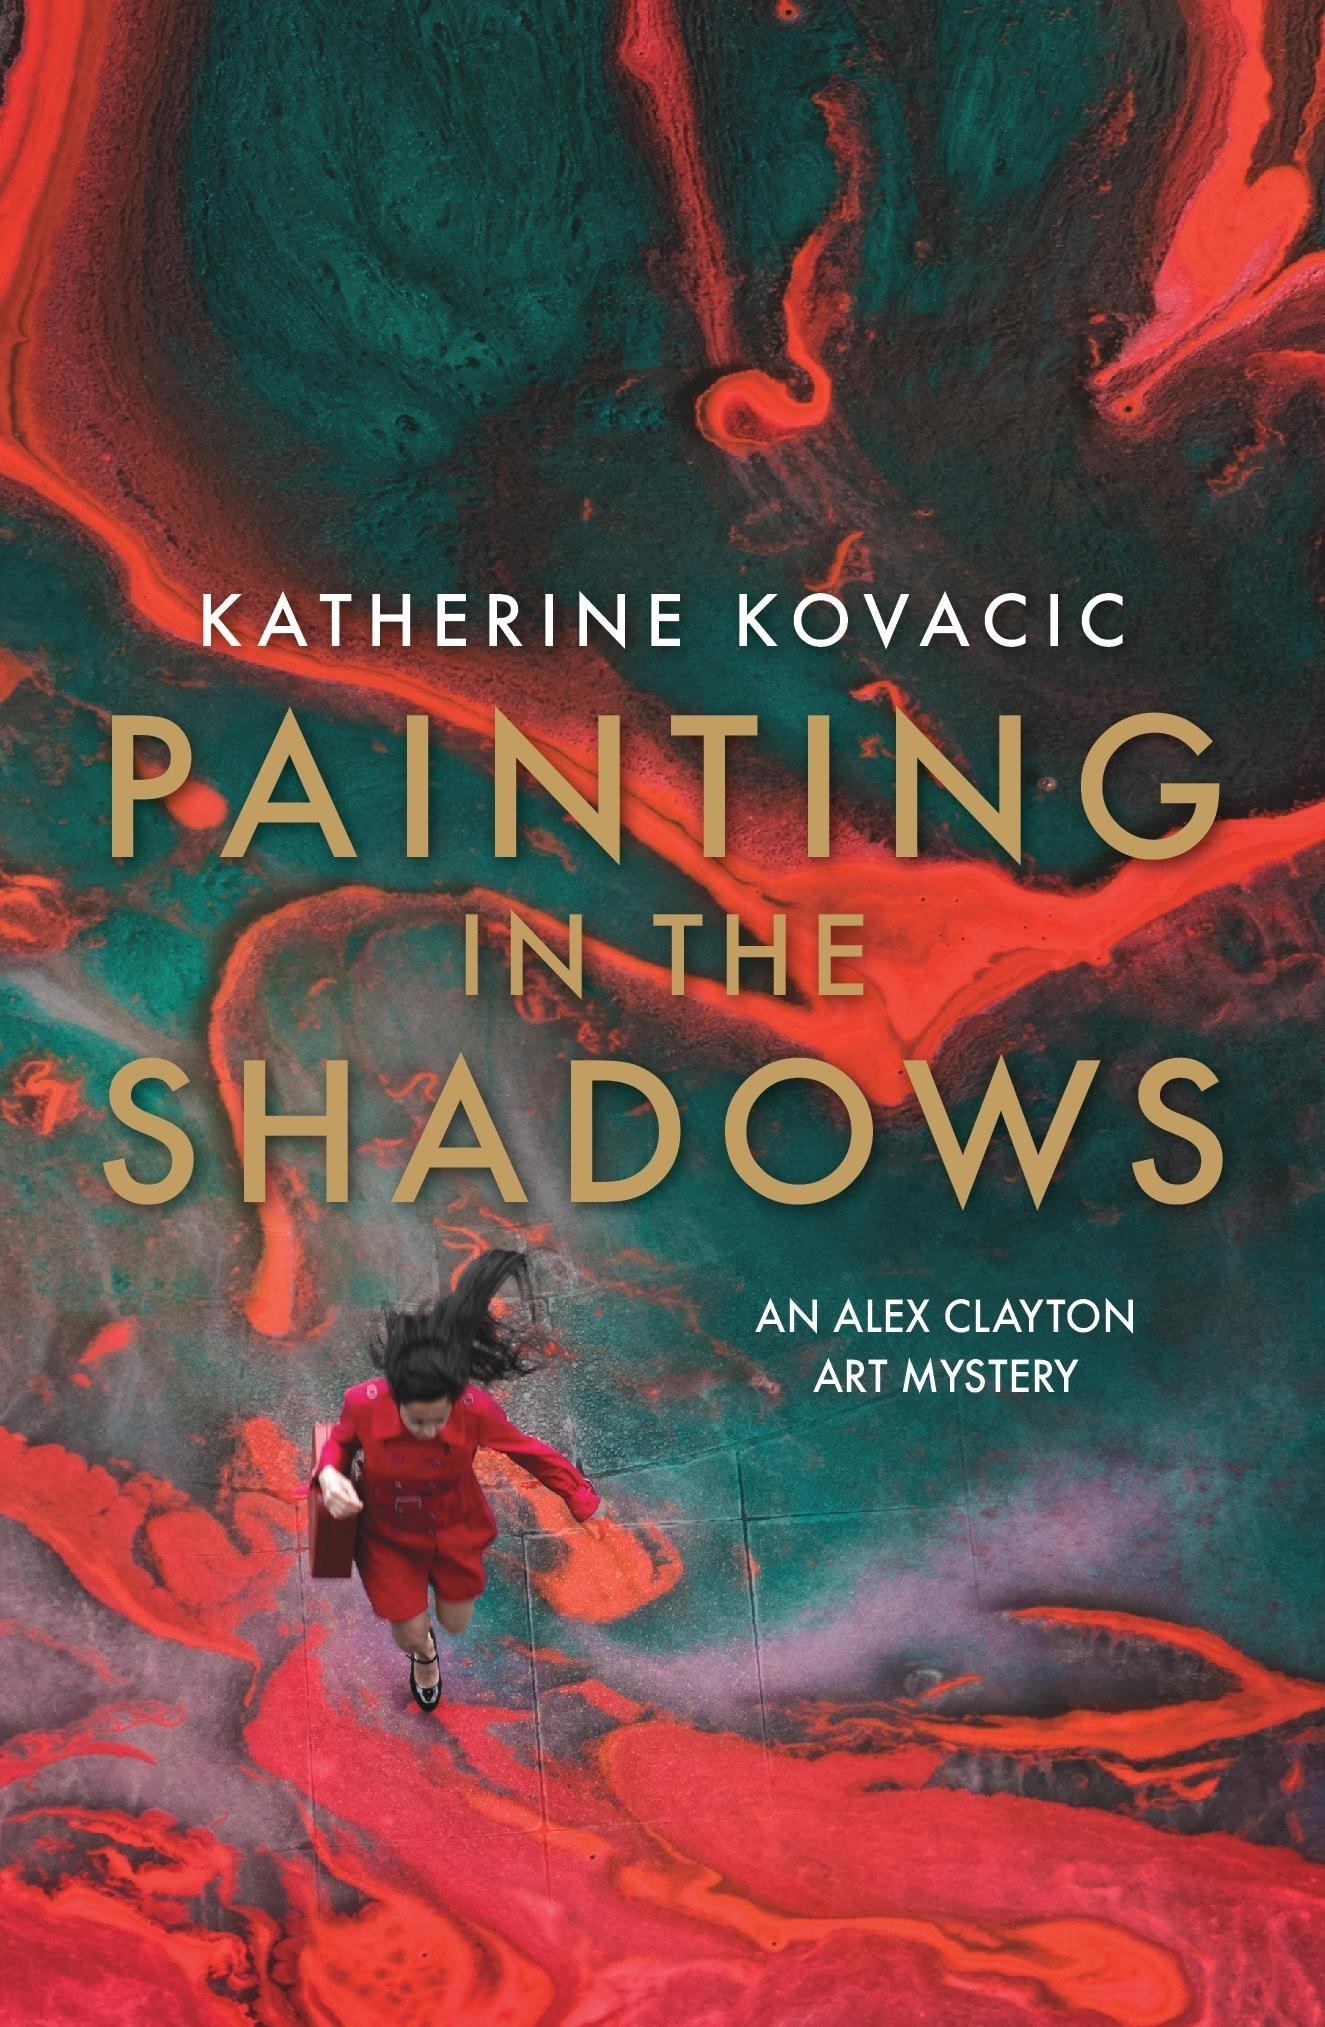 Painting in the Shadows (An Alex Clayton Art Mystery)